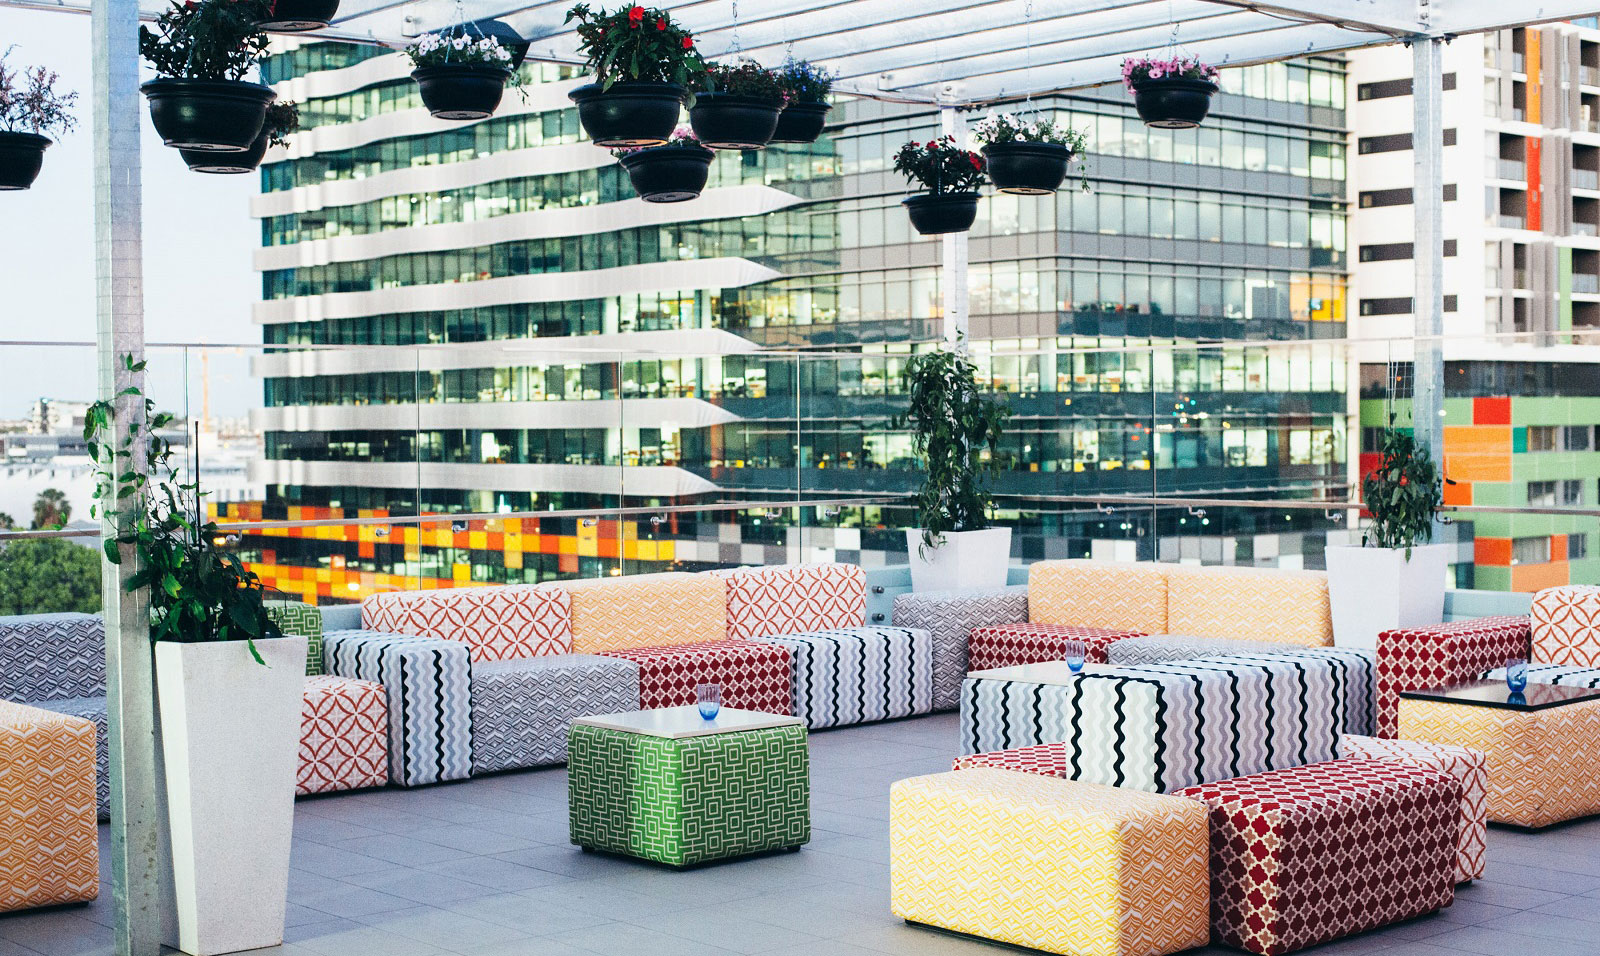 Up on Contace TRYP Hotel